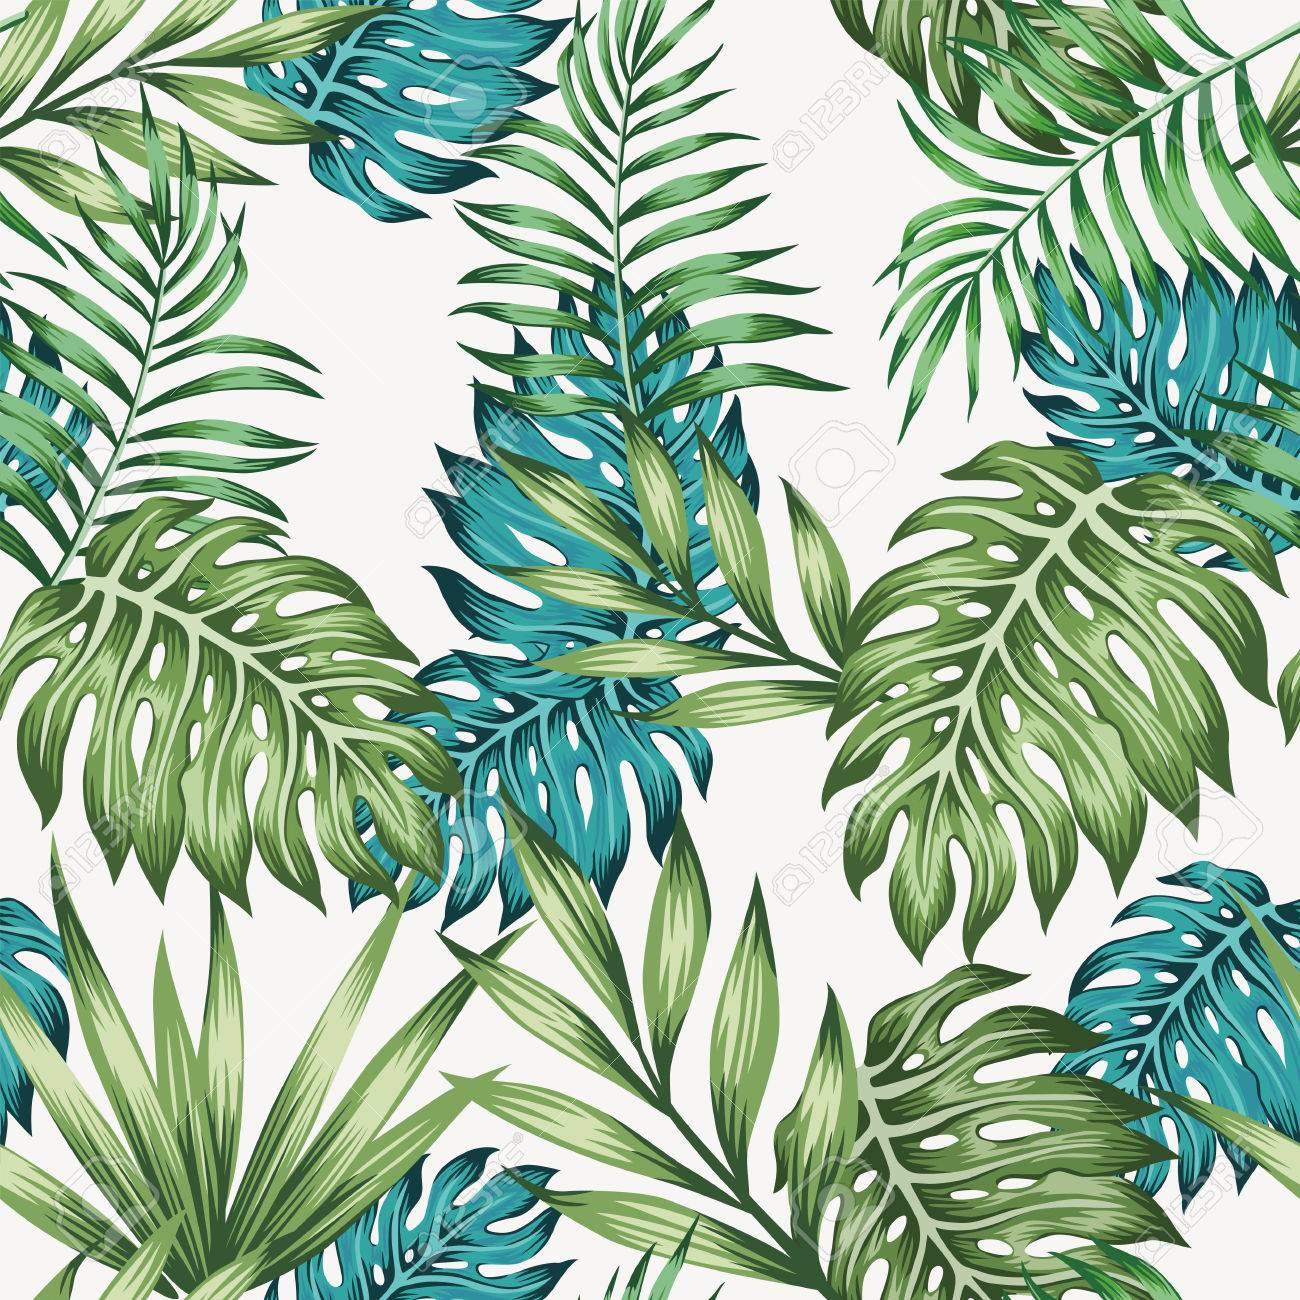 Blue And Green Tropical Leaves Seamless White Background Royalty Free Cliparts Vectors And Stock Illustration Image 85984898 Vector tropical background with palm leaves, jungle plants and white frame. blue and green tropical leaves seamless white background